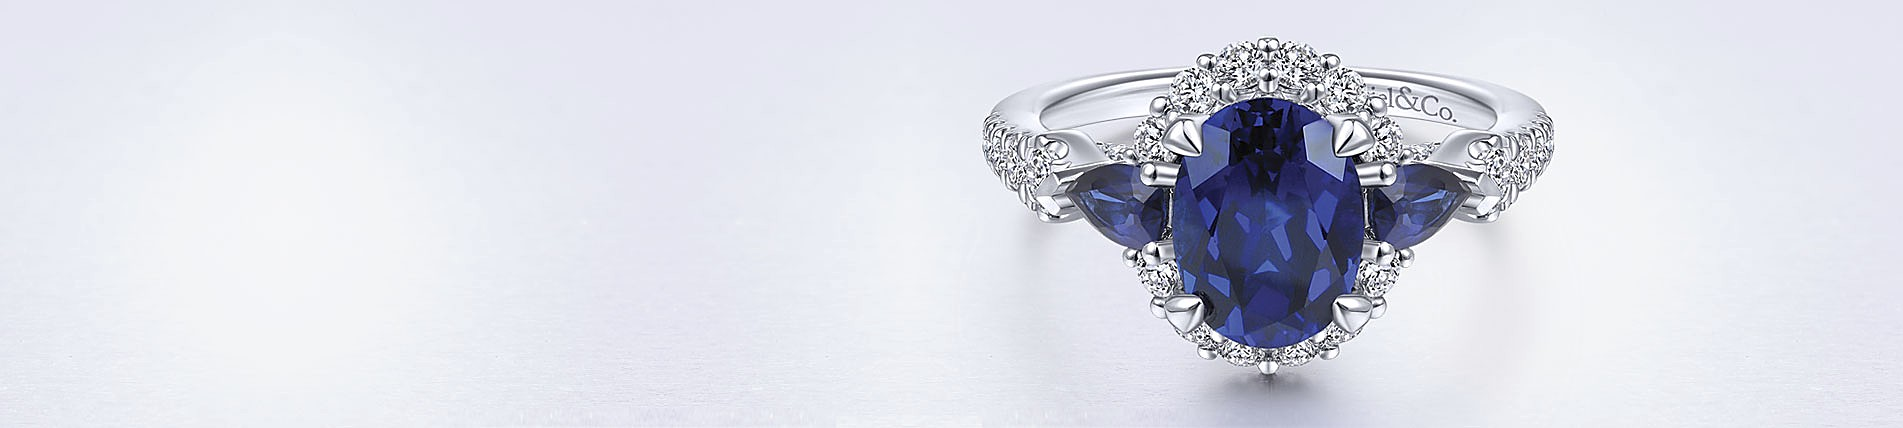 sapphire diamonds jewellery with engagement one rings artemer products ring carat